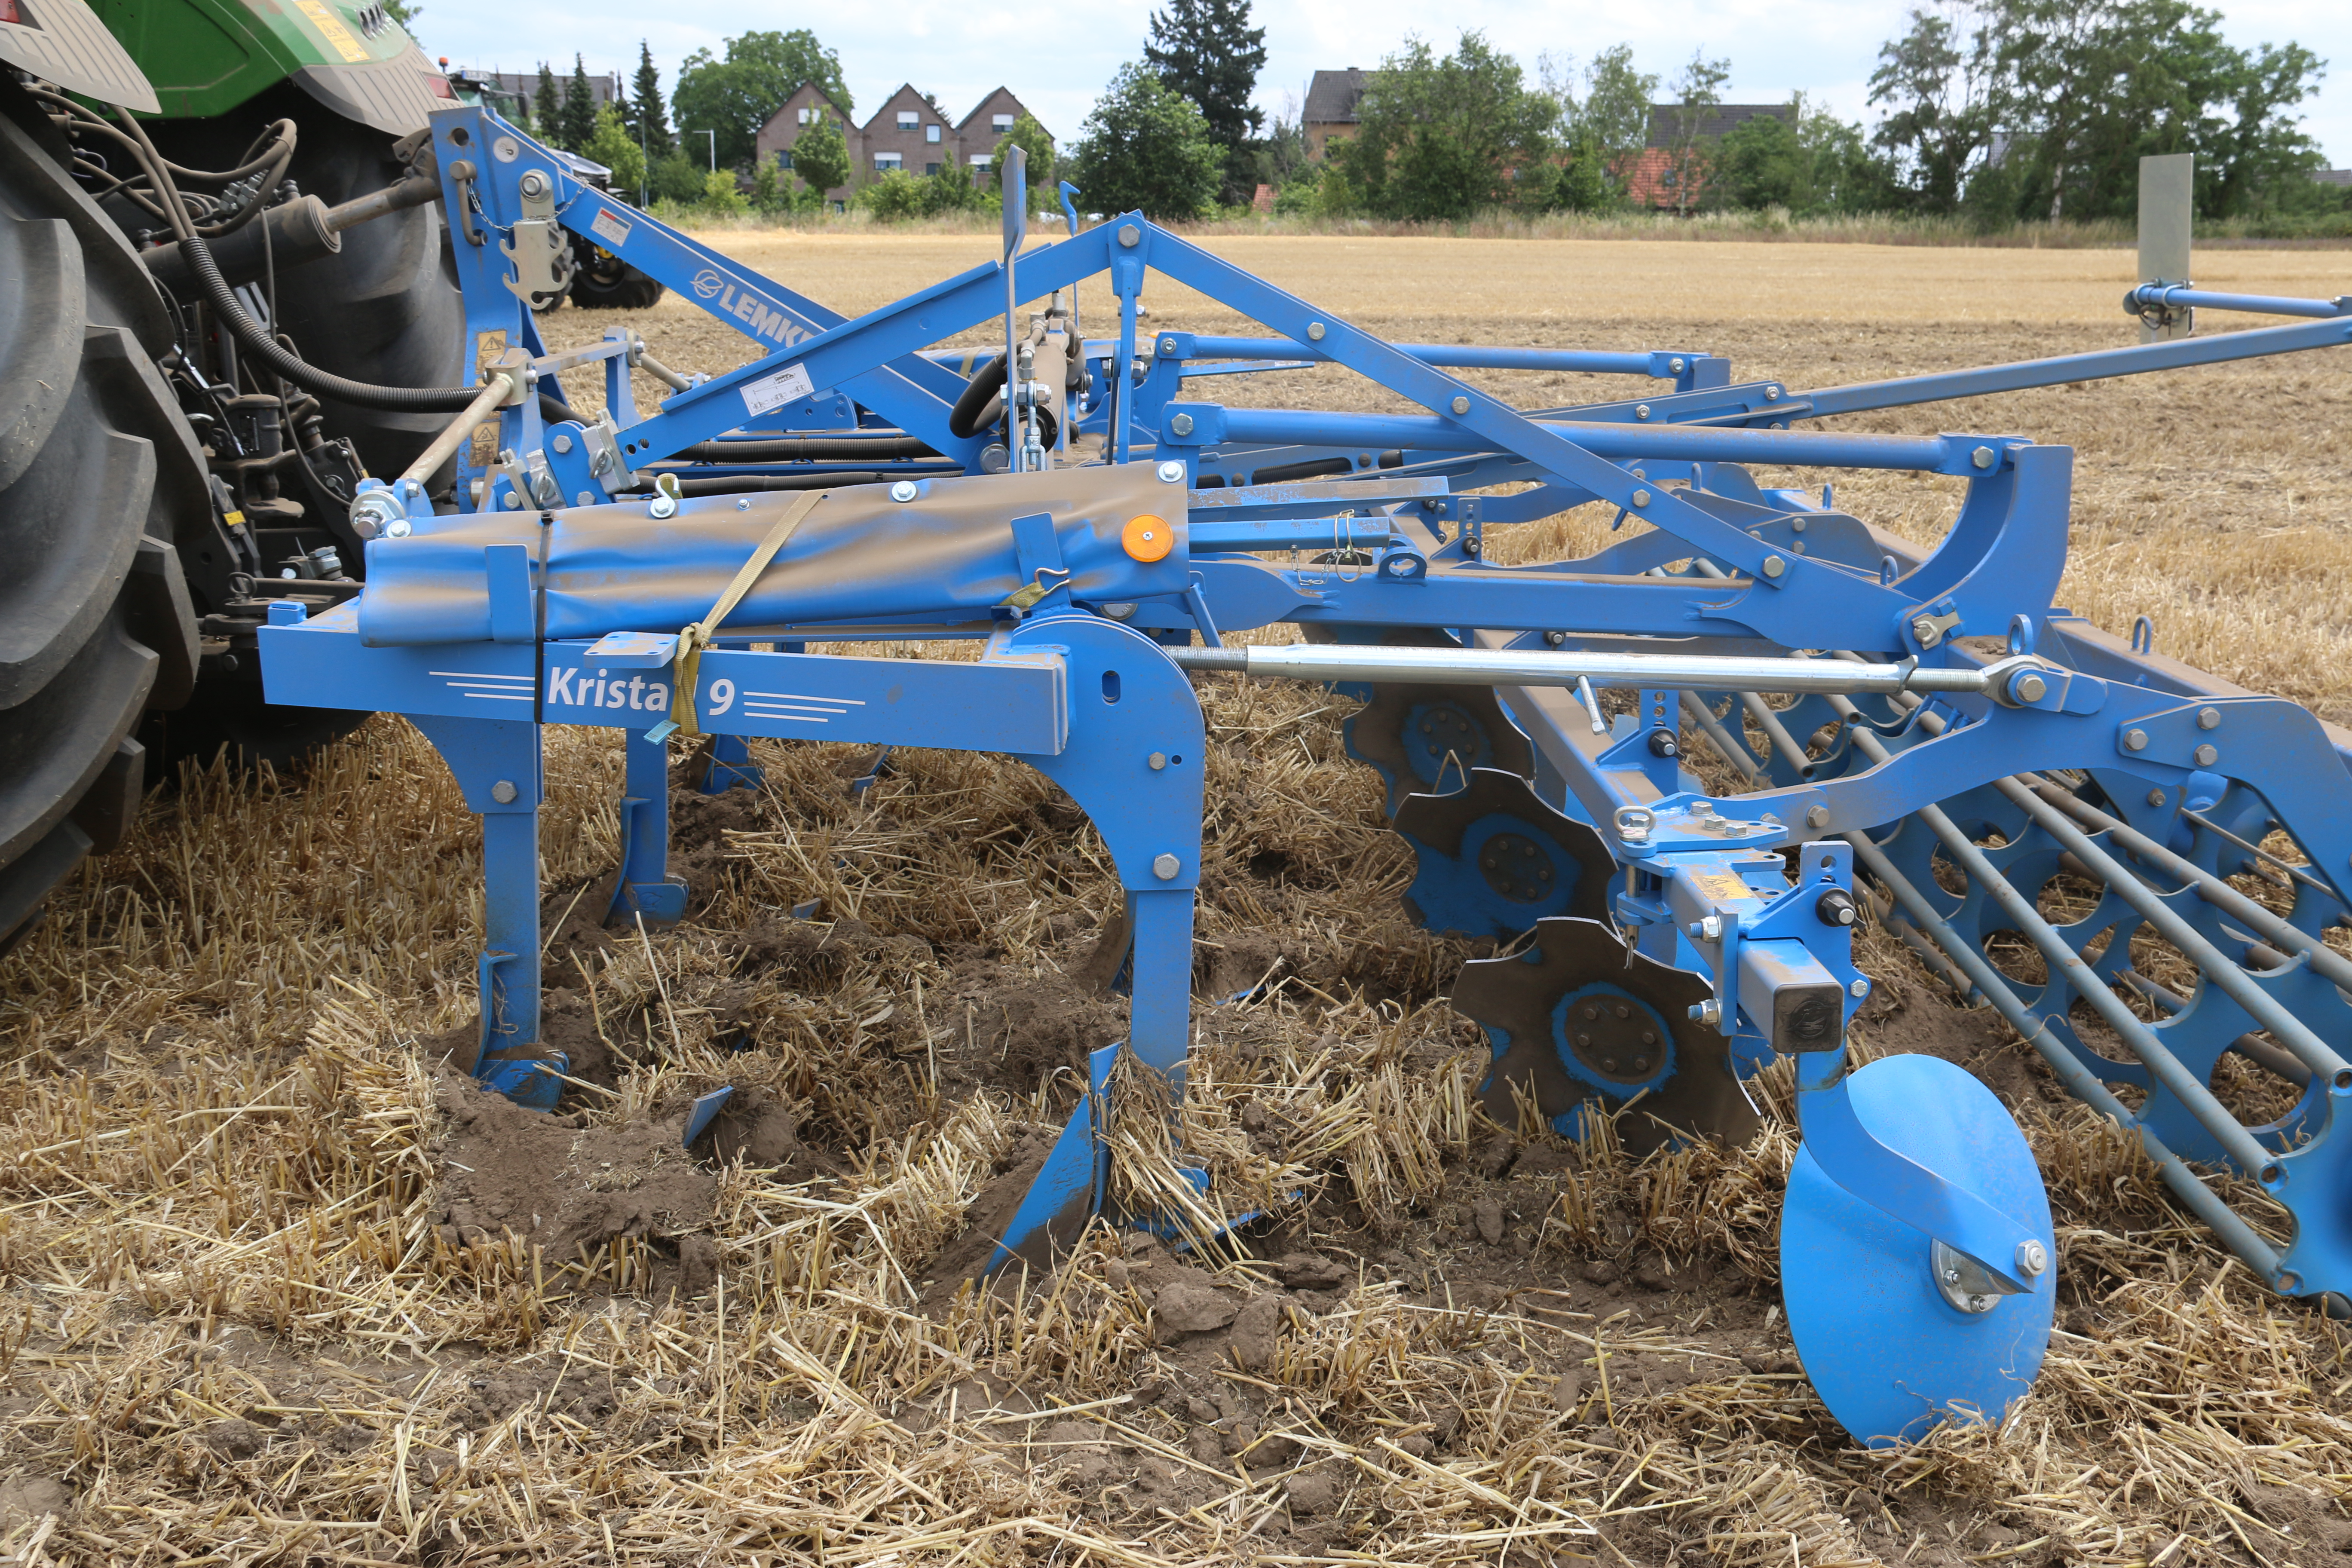 Lemken reports turnover of €365 million in 2020